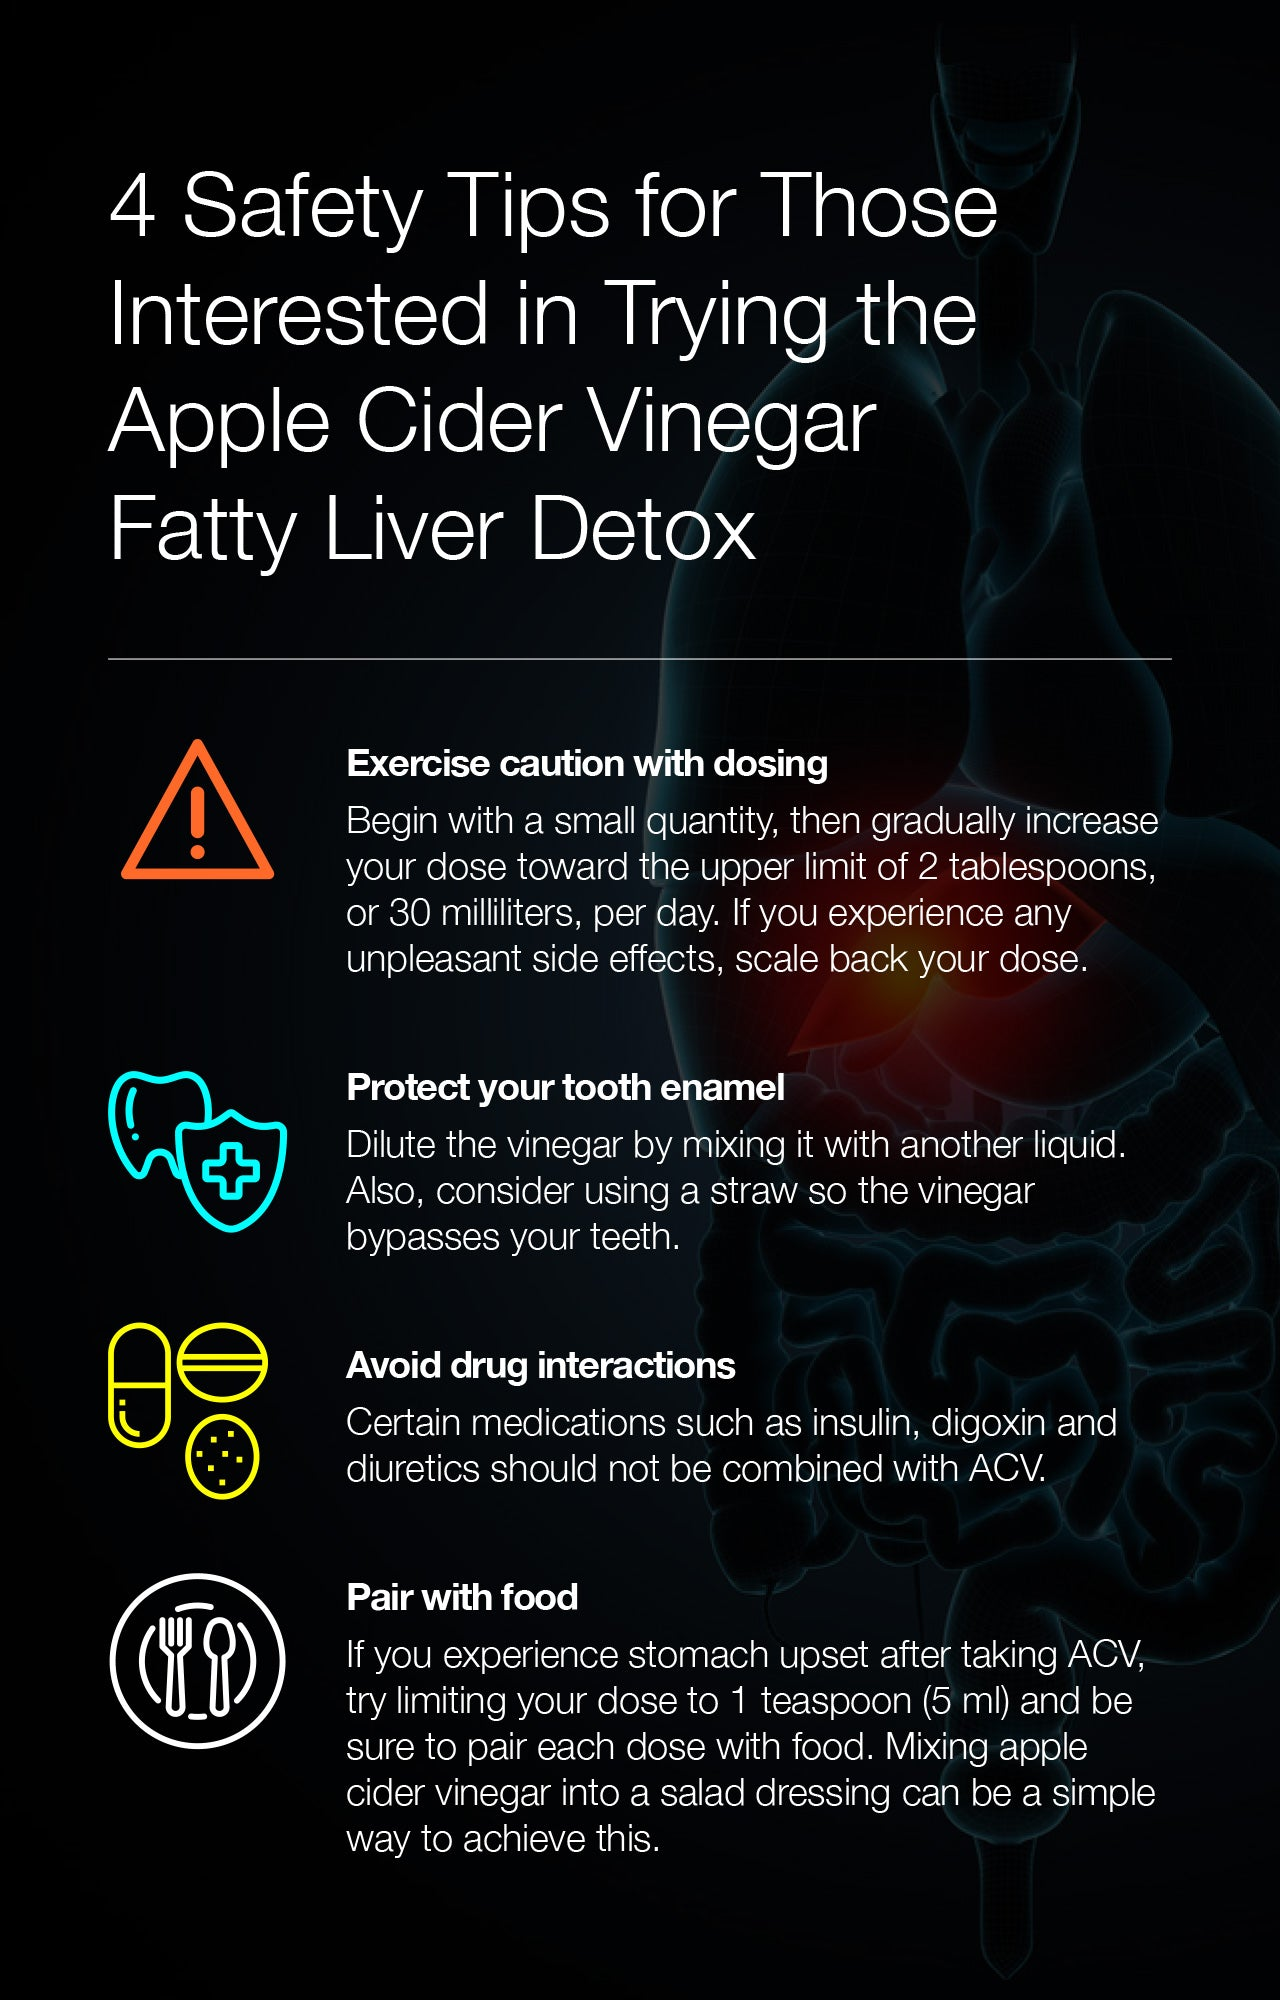 4 Safety Tips for Those Interested in Trying the Apple Cider Vinegar Fatty Liver Detox